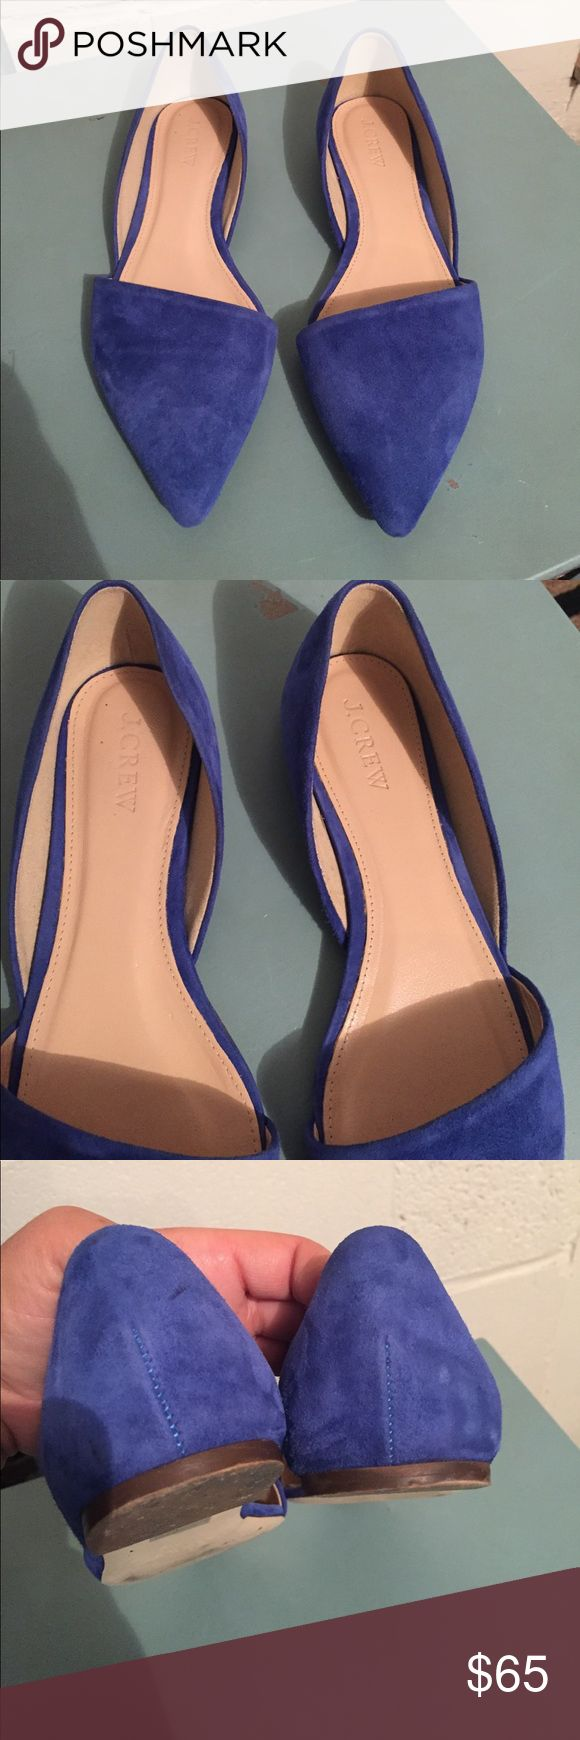 ⚡️SALE⚡️J. Crew Blue Suede d'Orsay Flats J. Crew Blue Suede d'Orsay Flats - (Not from Outlet Store) - Great Pre-Own Condition - Any Questions, please ask! J. Crew Shoes Flats & Loafers